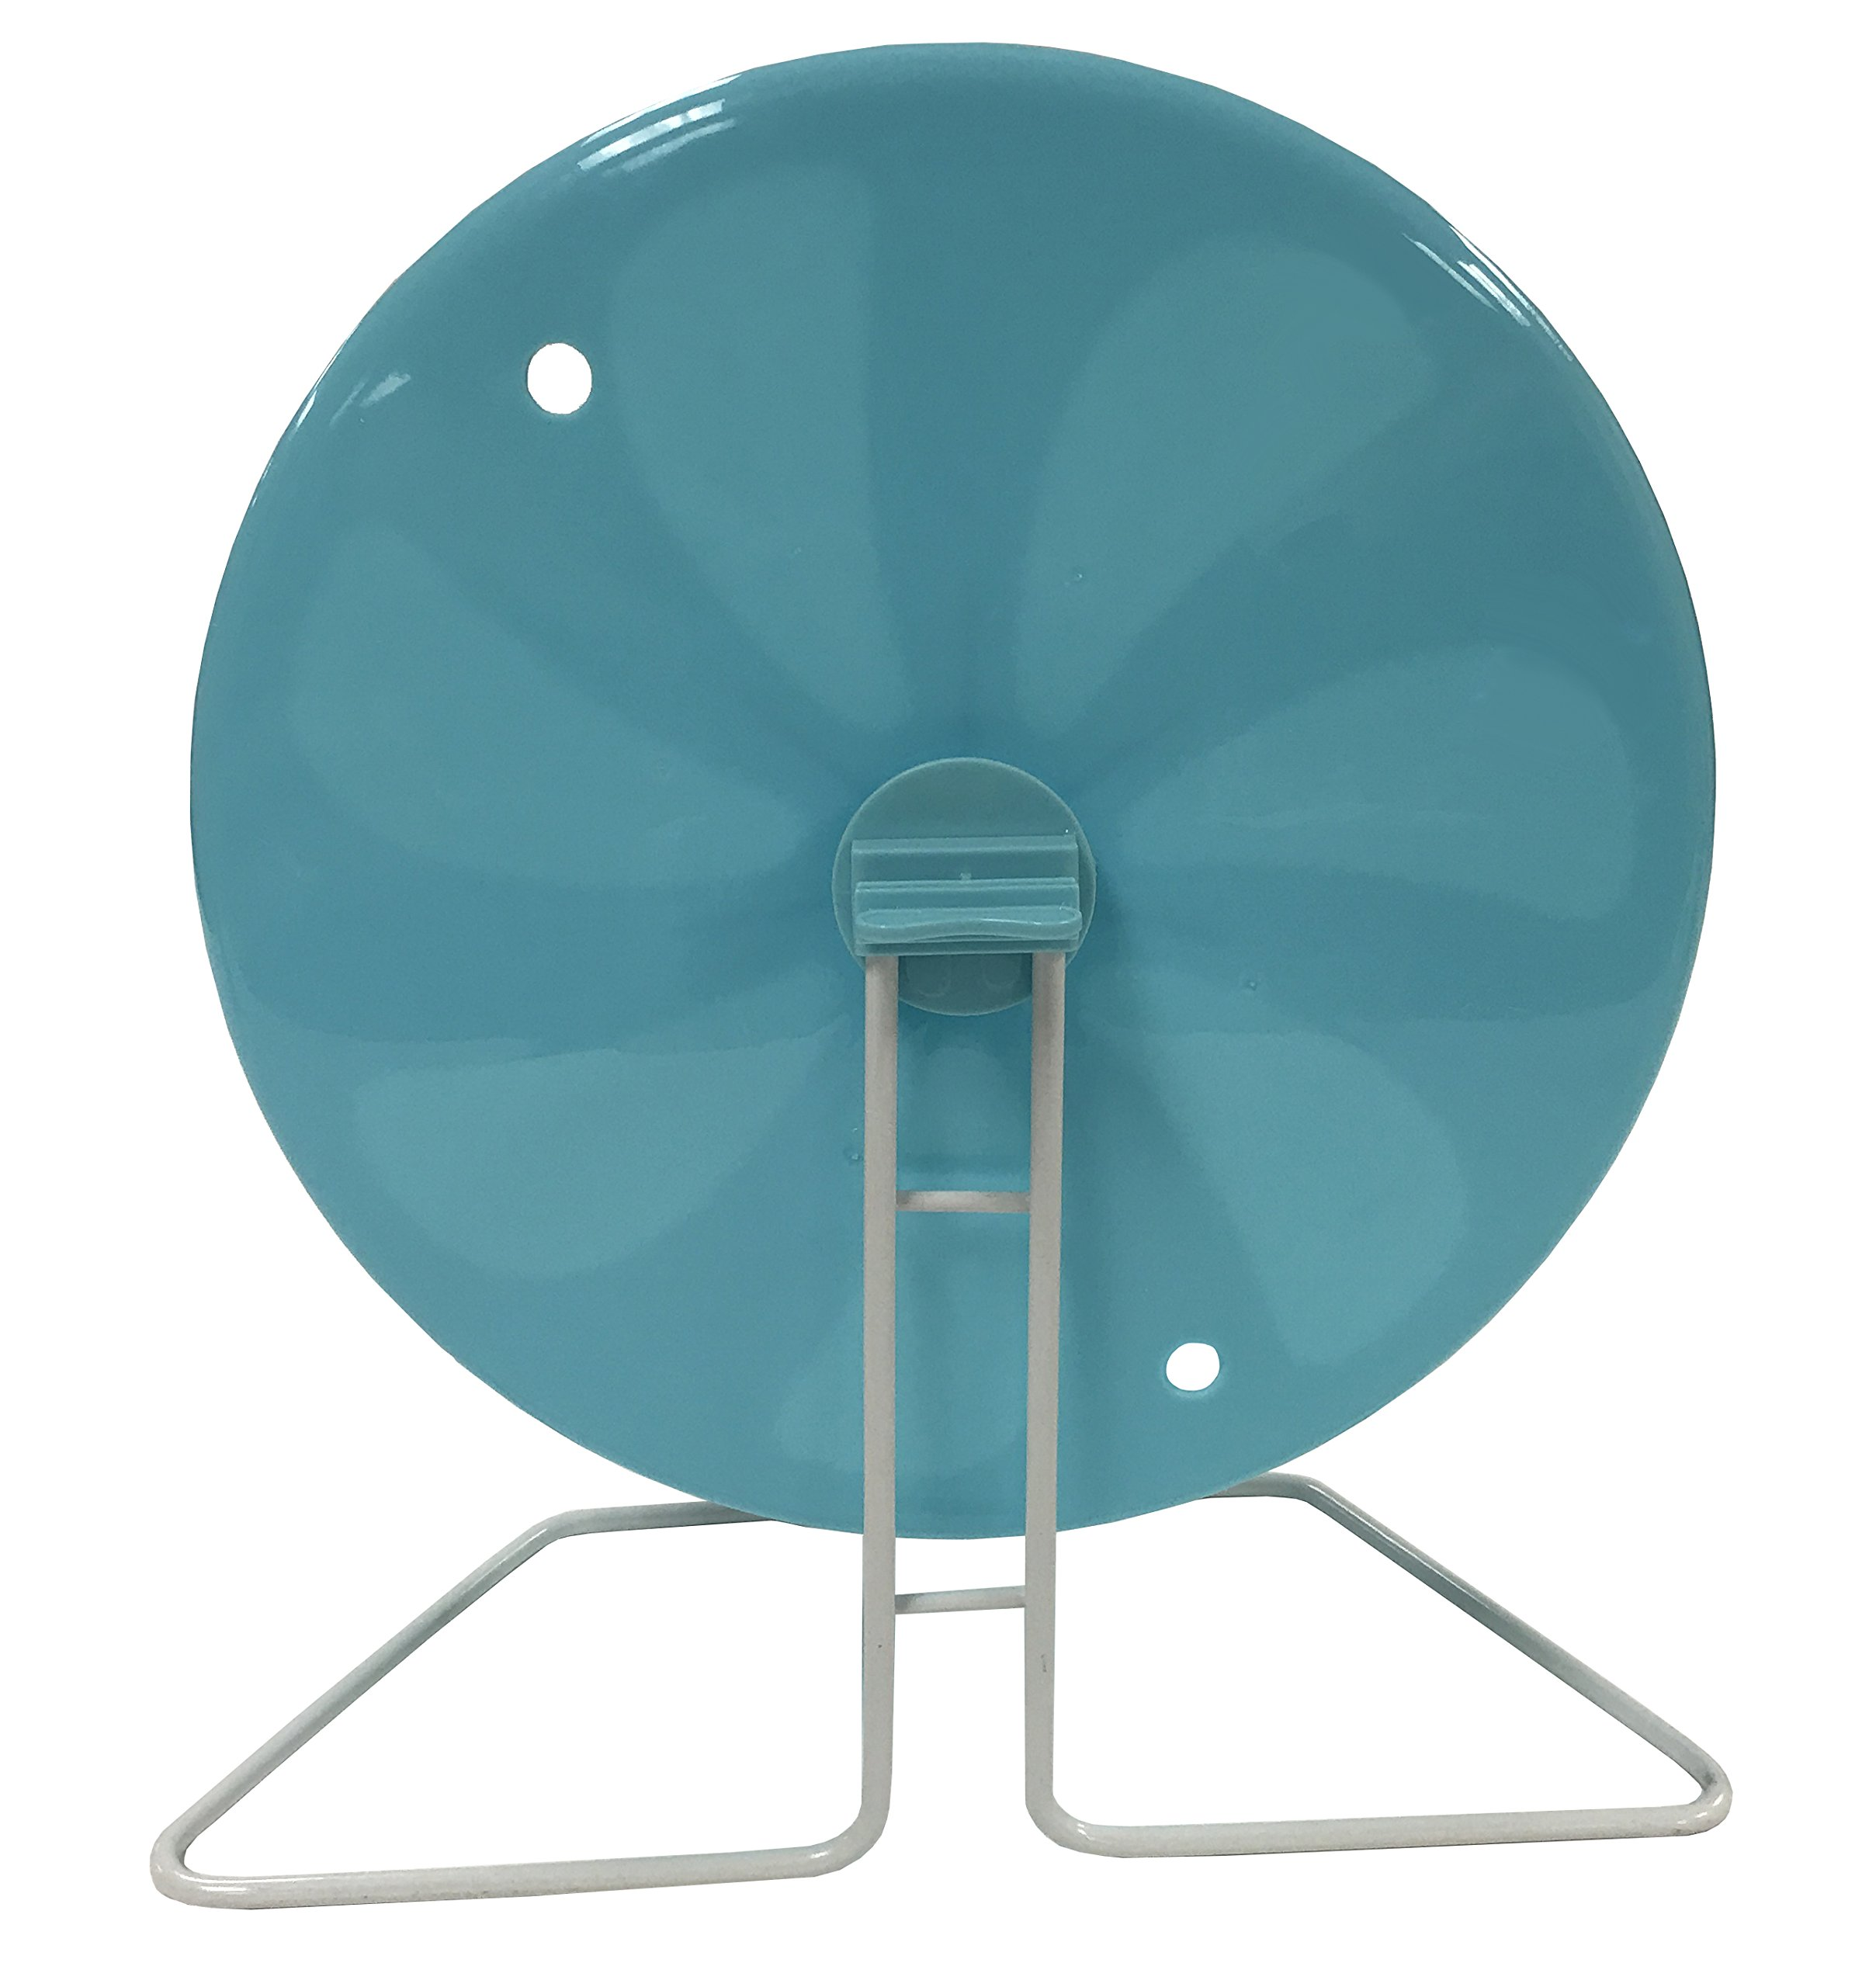 Penn-Plax 8'' Exercise Wheel - Perfect For Rats, Hamsters, Mice, Gerbils and Other Small Animals by Penn Plax (Image #2)